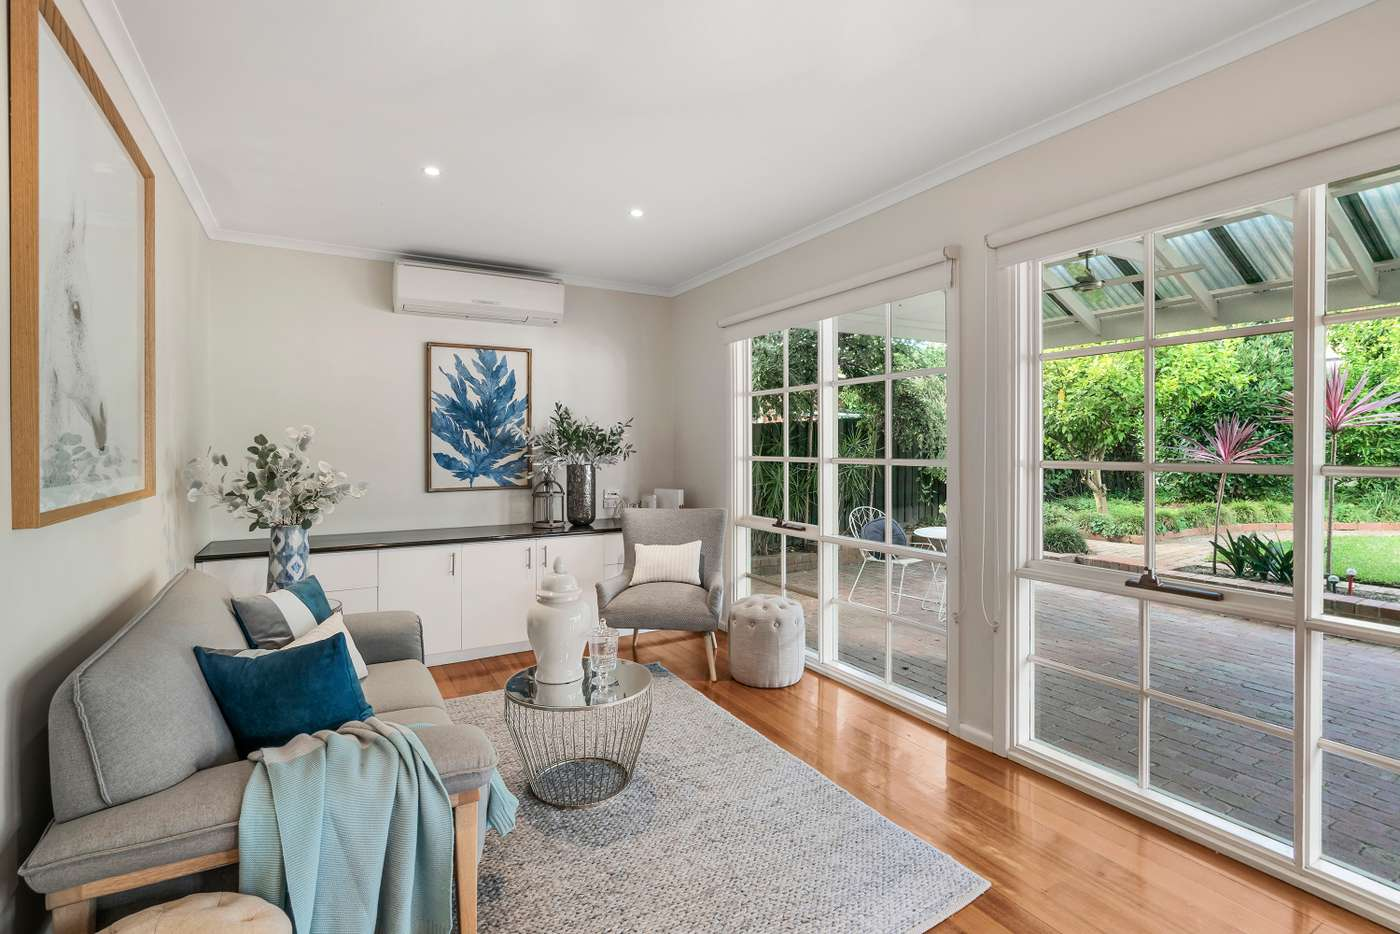 Main view of Homely house listing, 23 Severn Street, Balwyn North VIC 3104